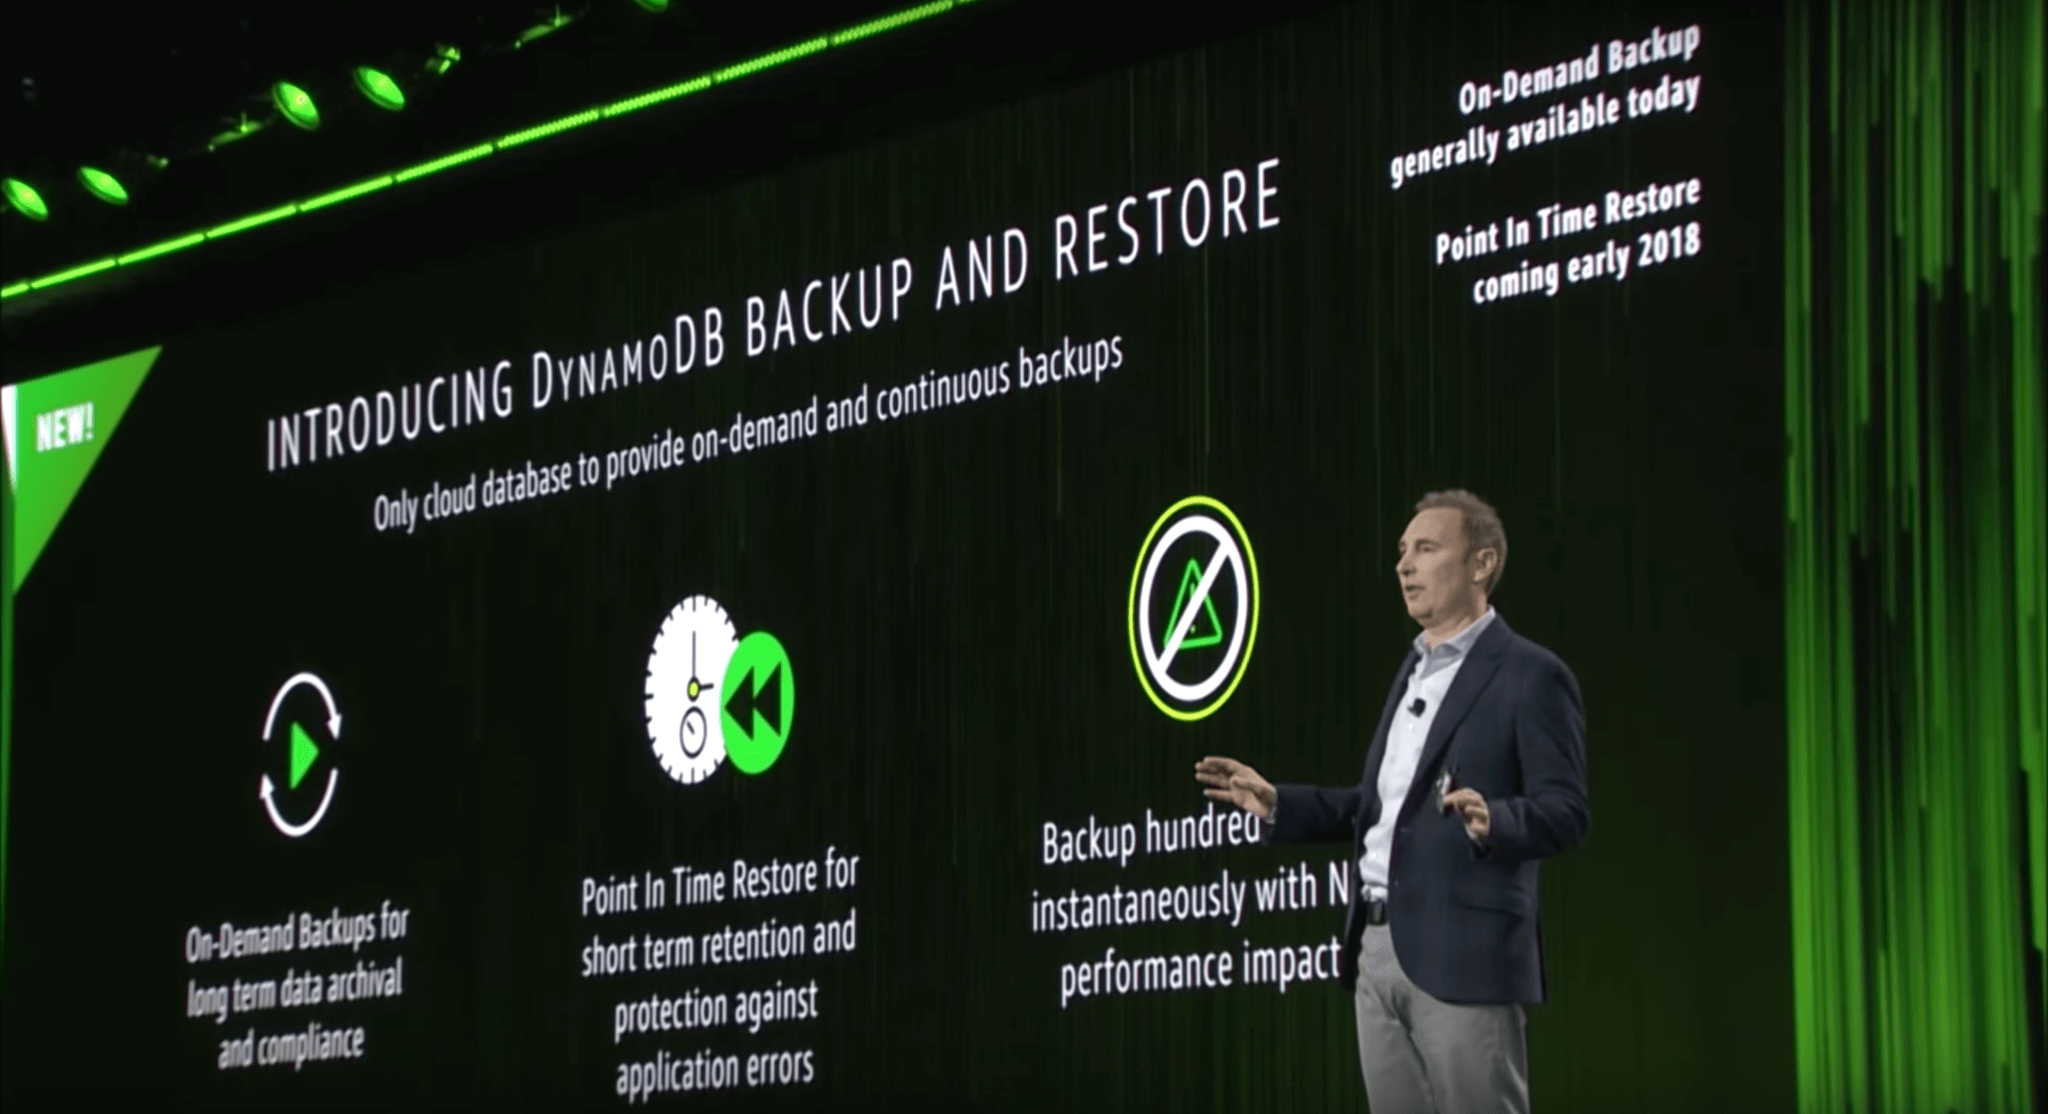 AWS Announcements at re:Invent 2017 - Introducing DynamoDB Backup and Restore